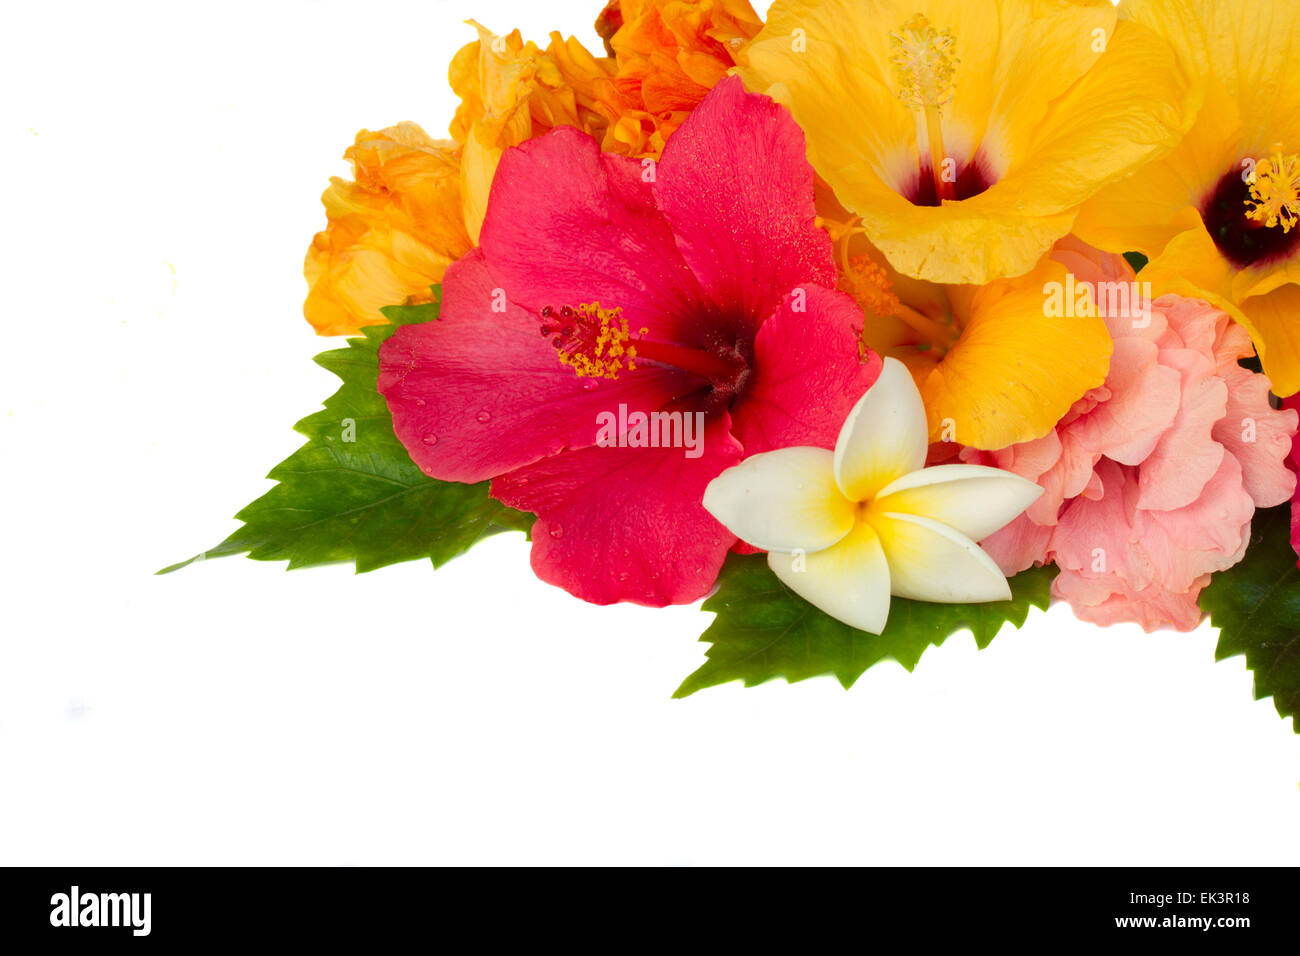 border of colorful hibiscus flowers Stock Photo: 80603860 - Alamy